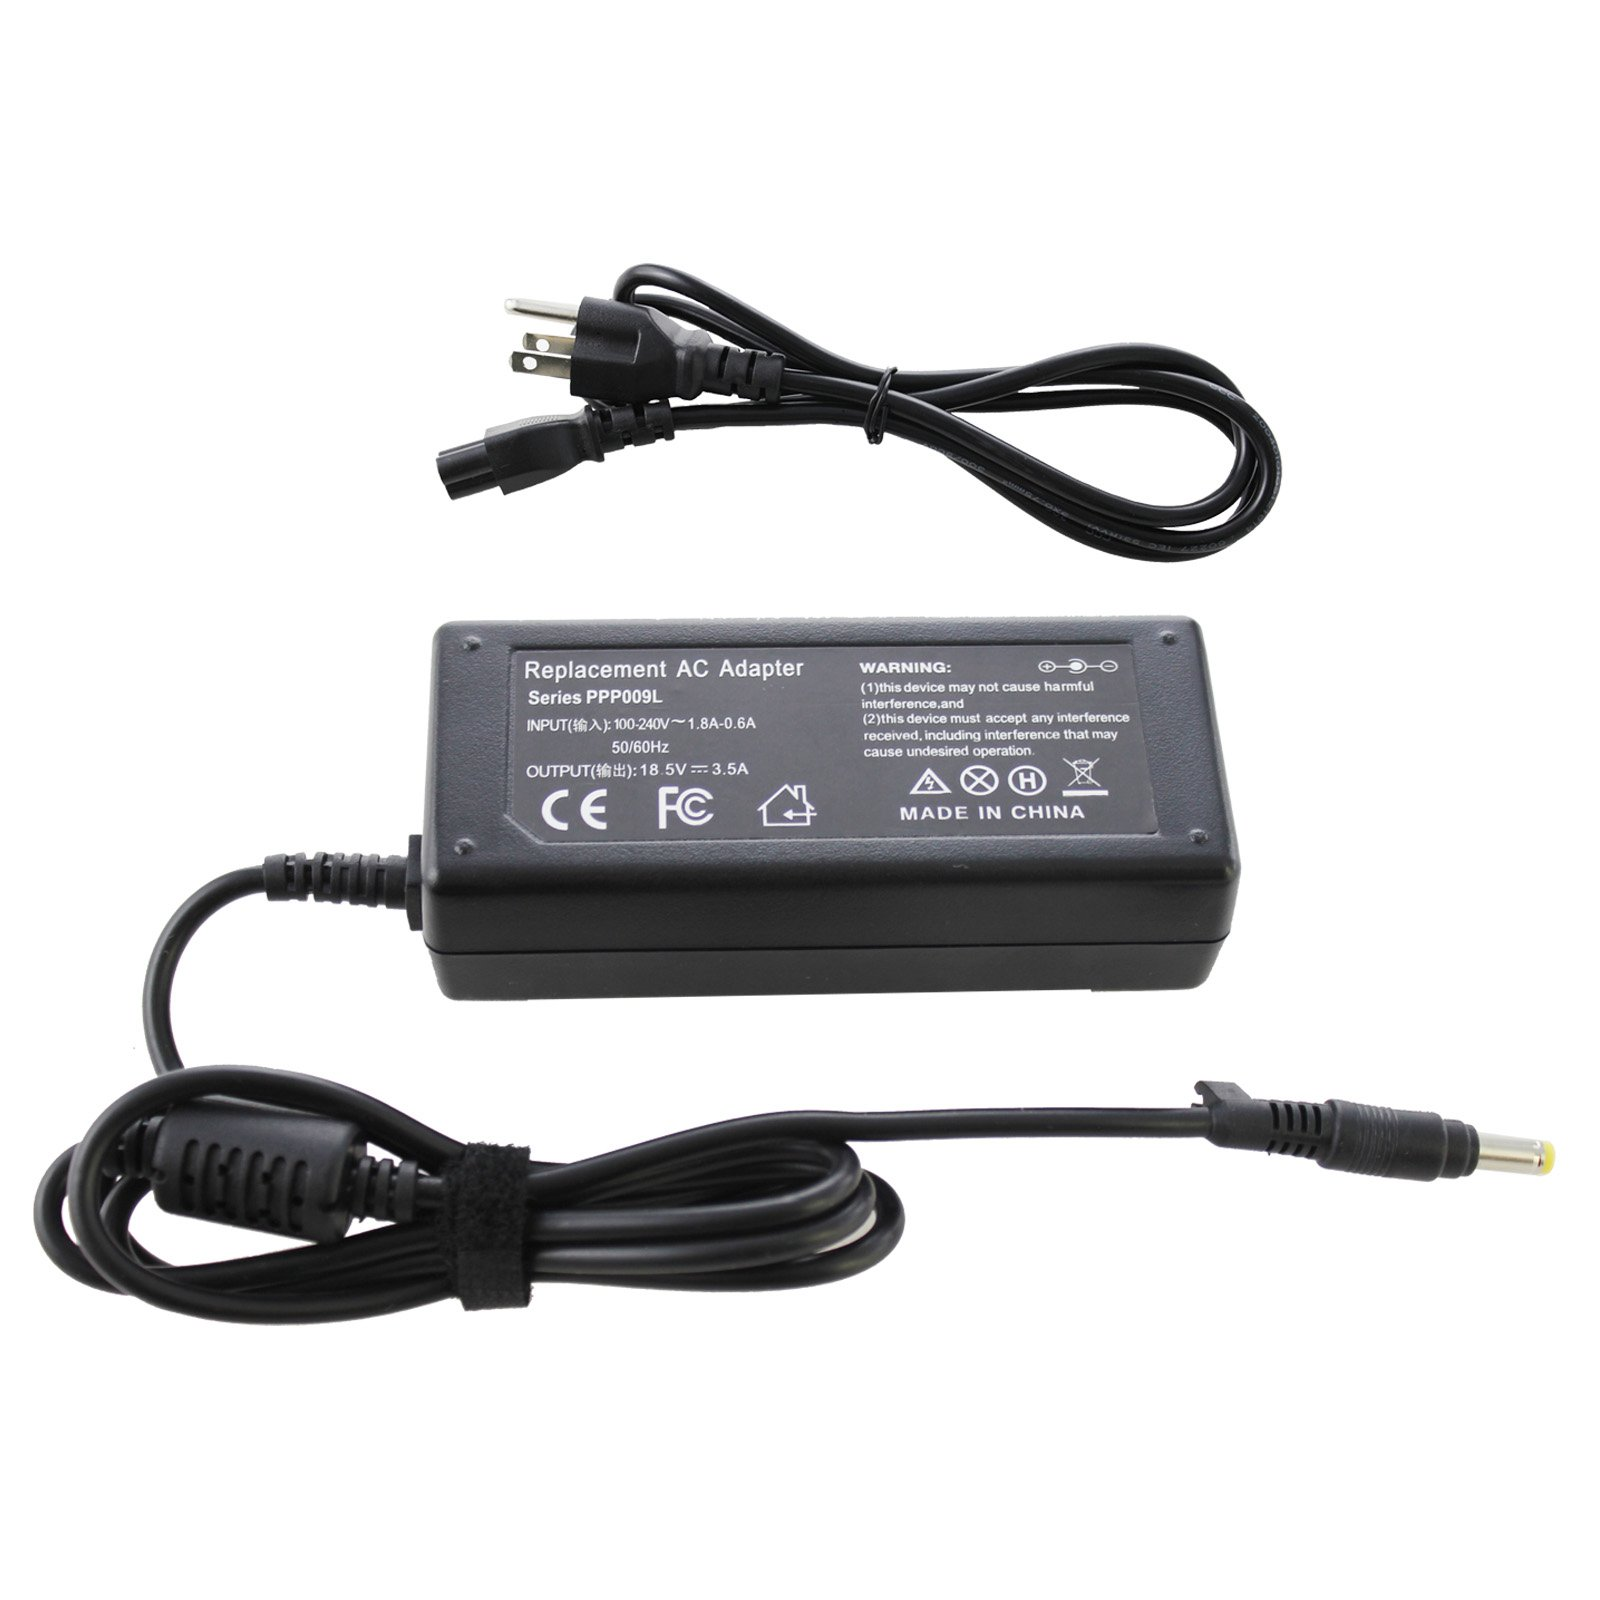 ANGWEL New 18.5V 3.5A 65W 4.8mm1.7mm Power Supply Charger for HP Pavillion DV2000, DV4000 ,DV6000 Adapter for HP 500, 510, 520, 530, 540, 541, 550